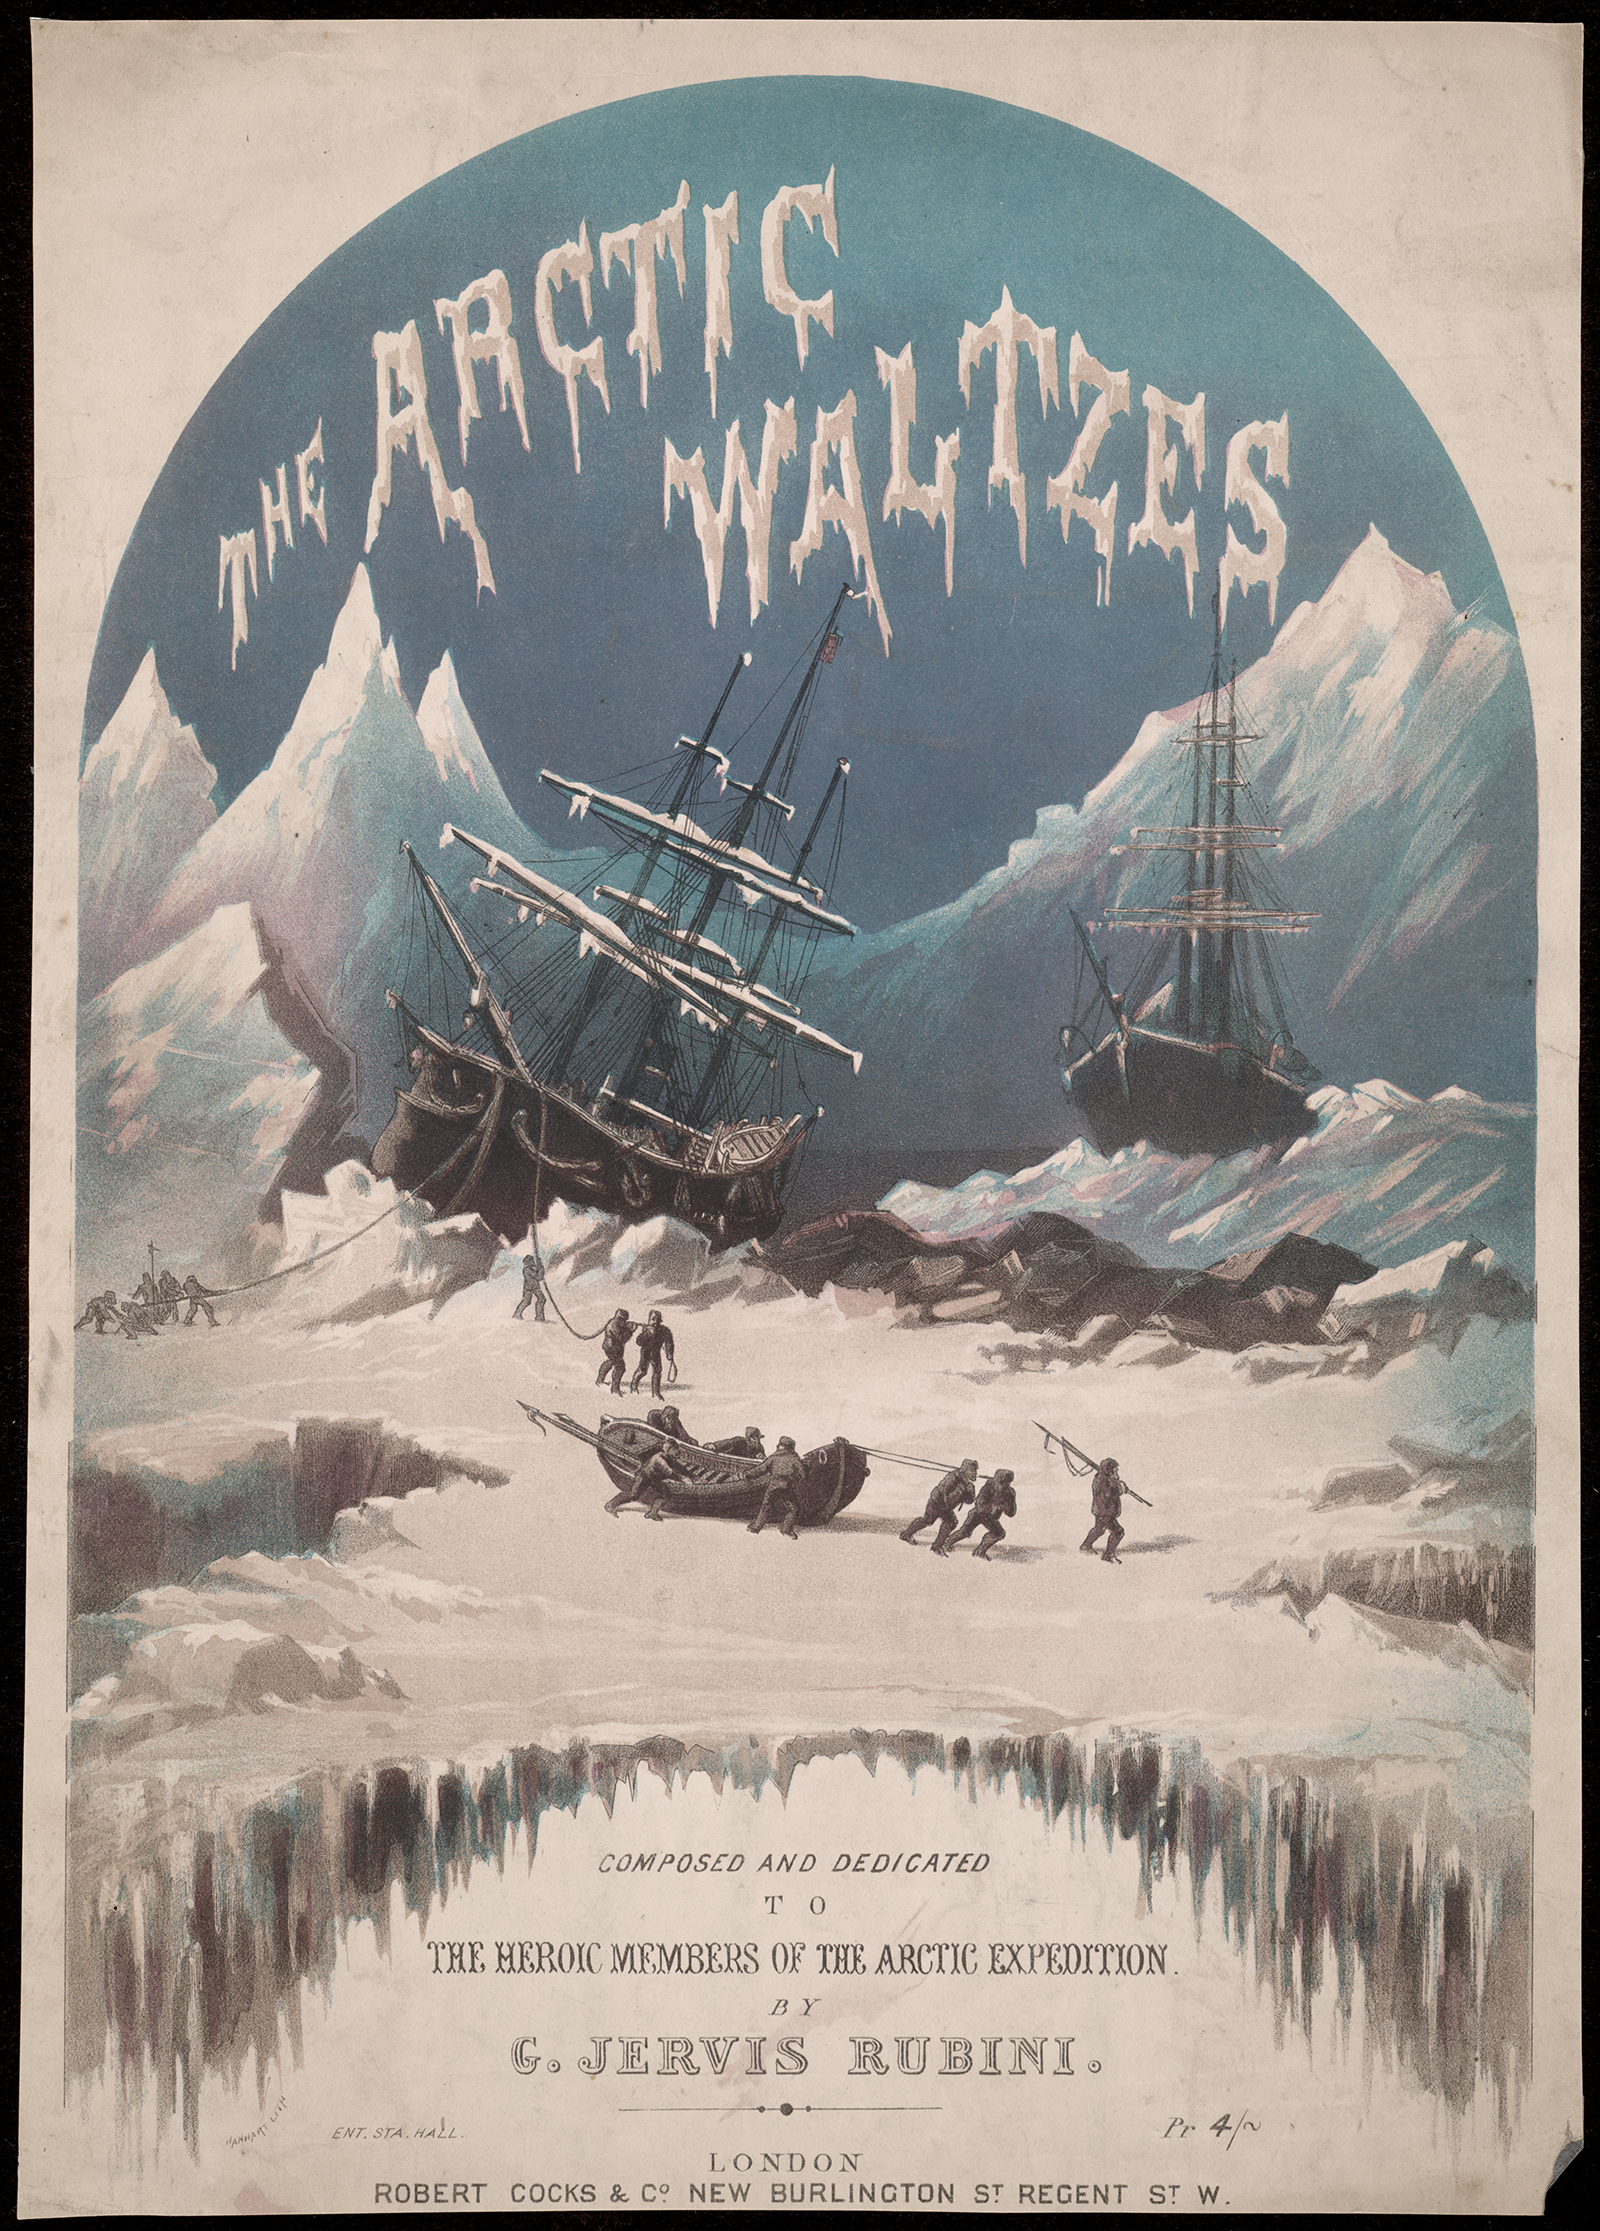 The Arctic Waltzes